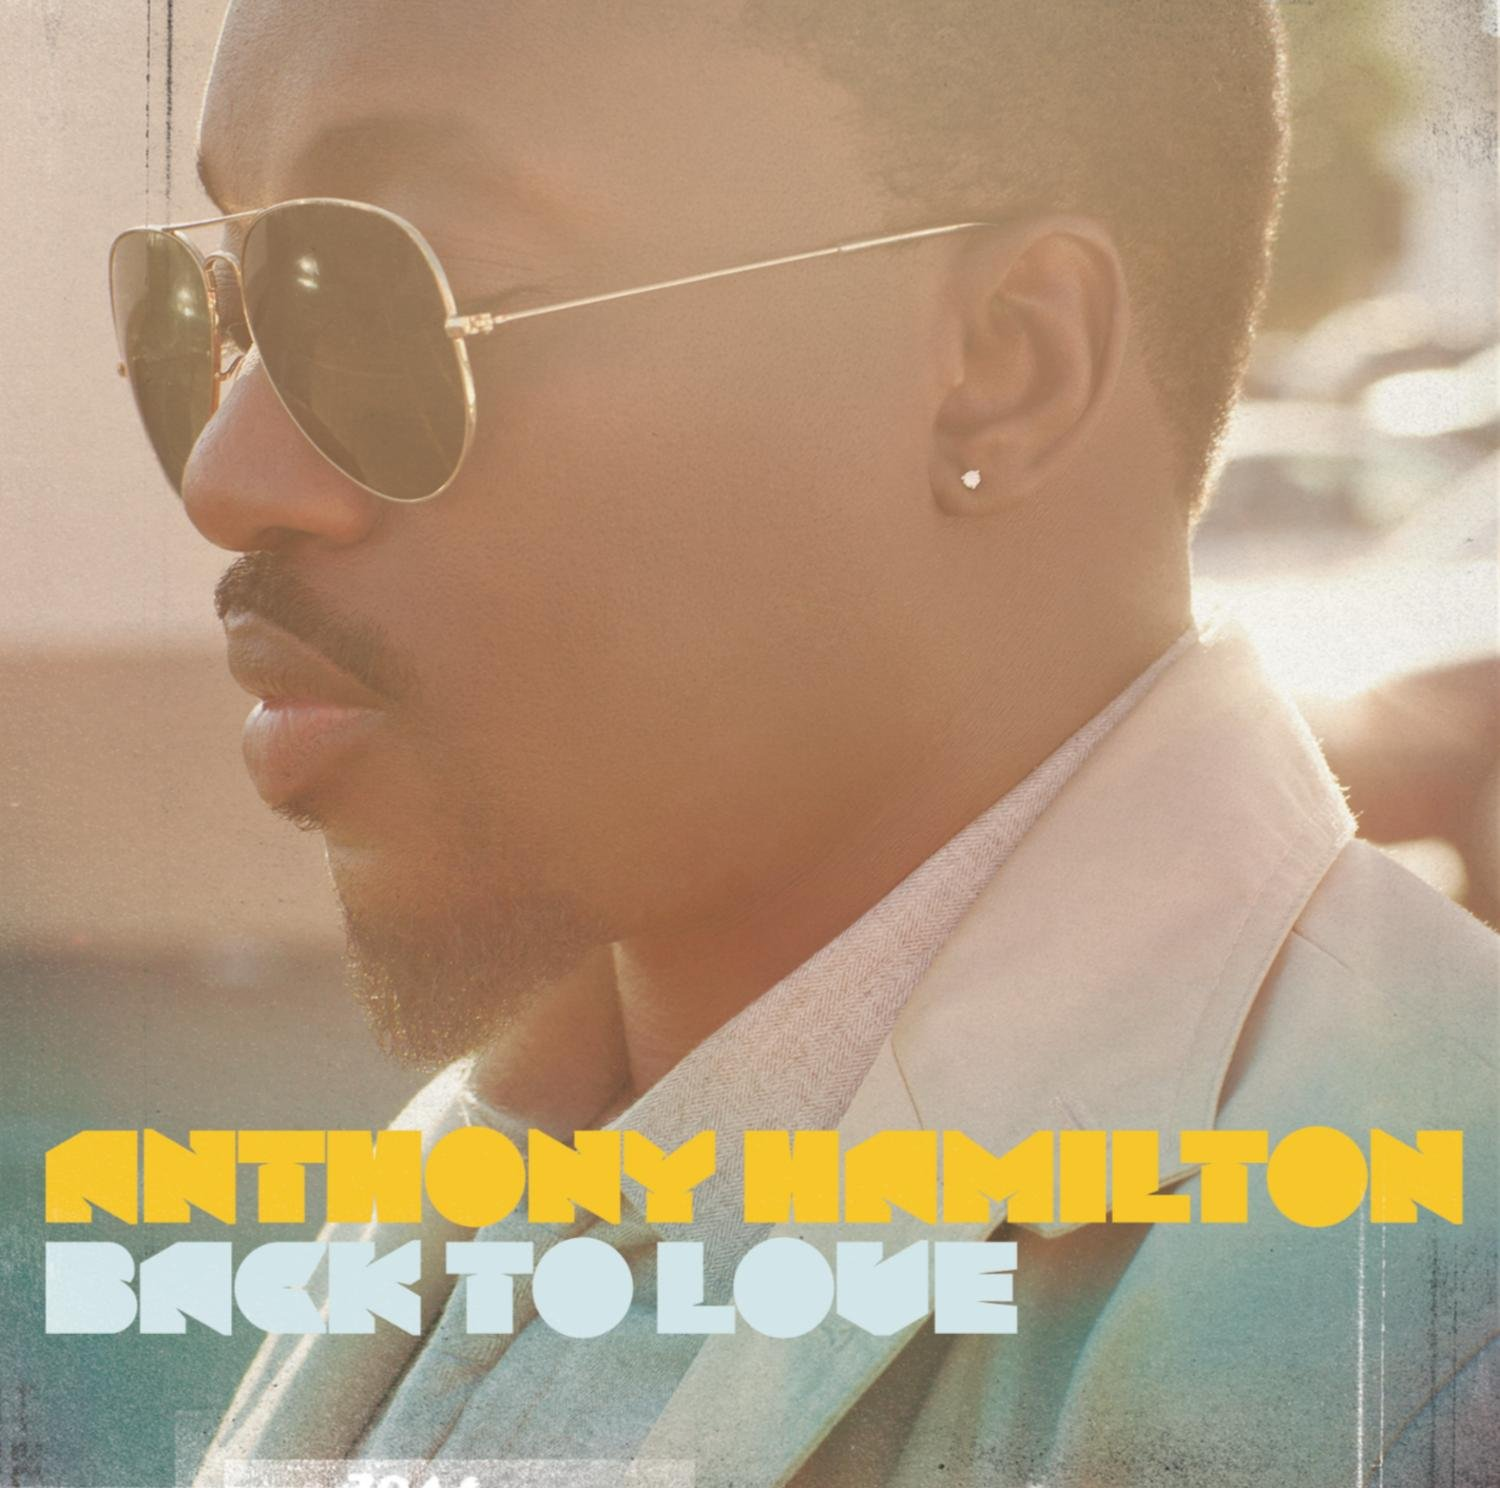 anthony hamilton back to love free mp3 download